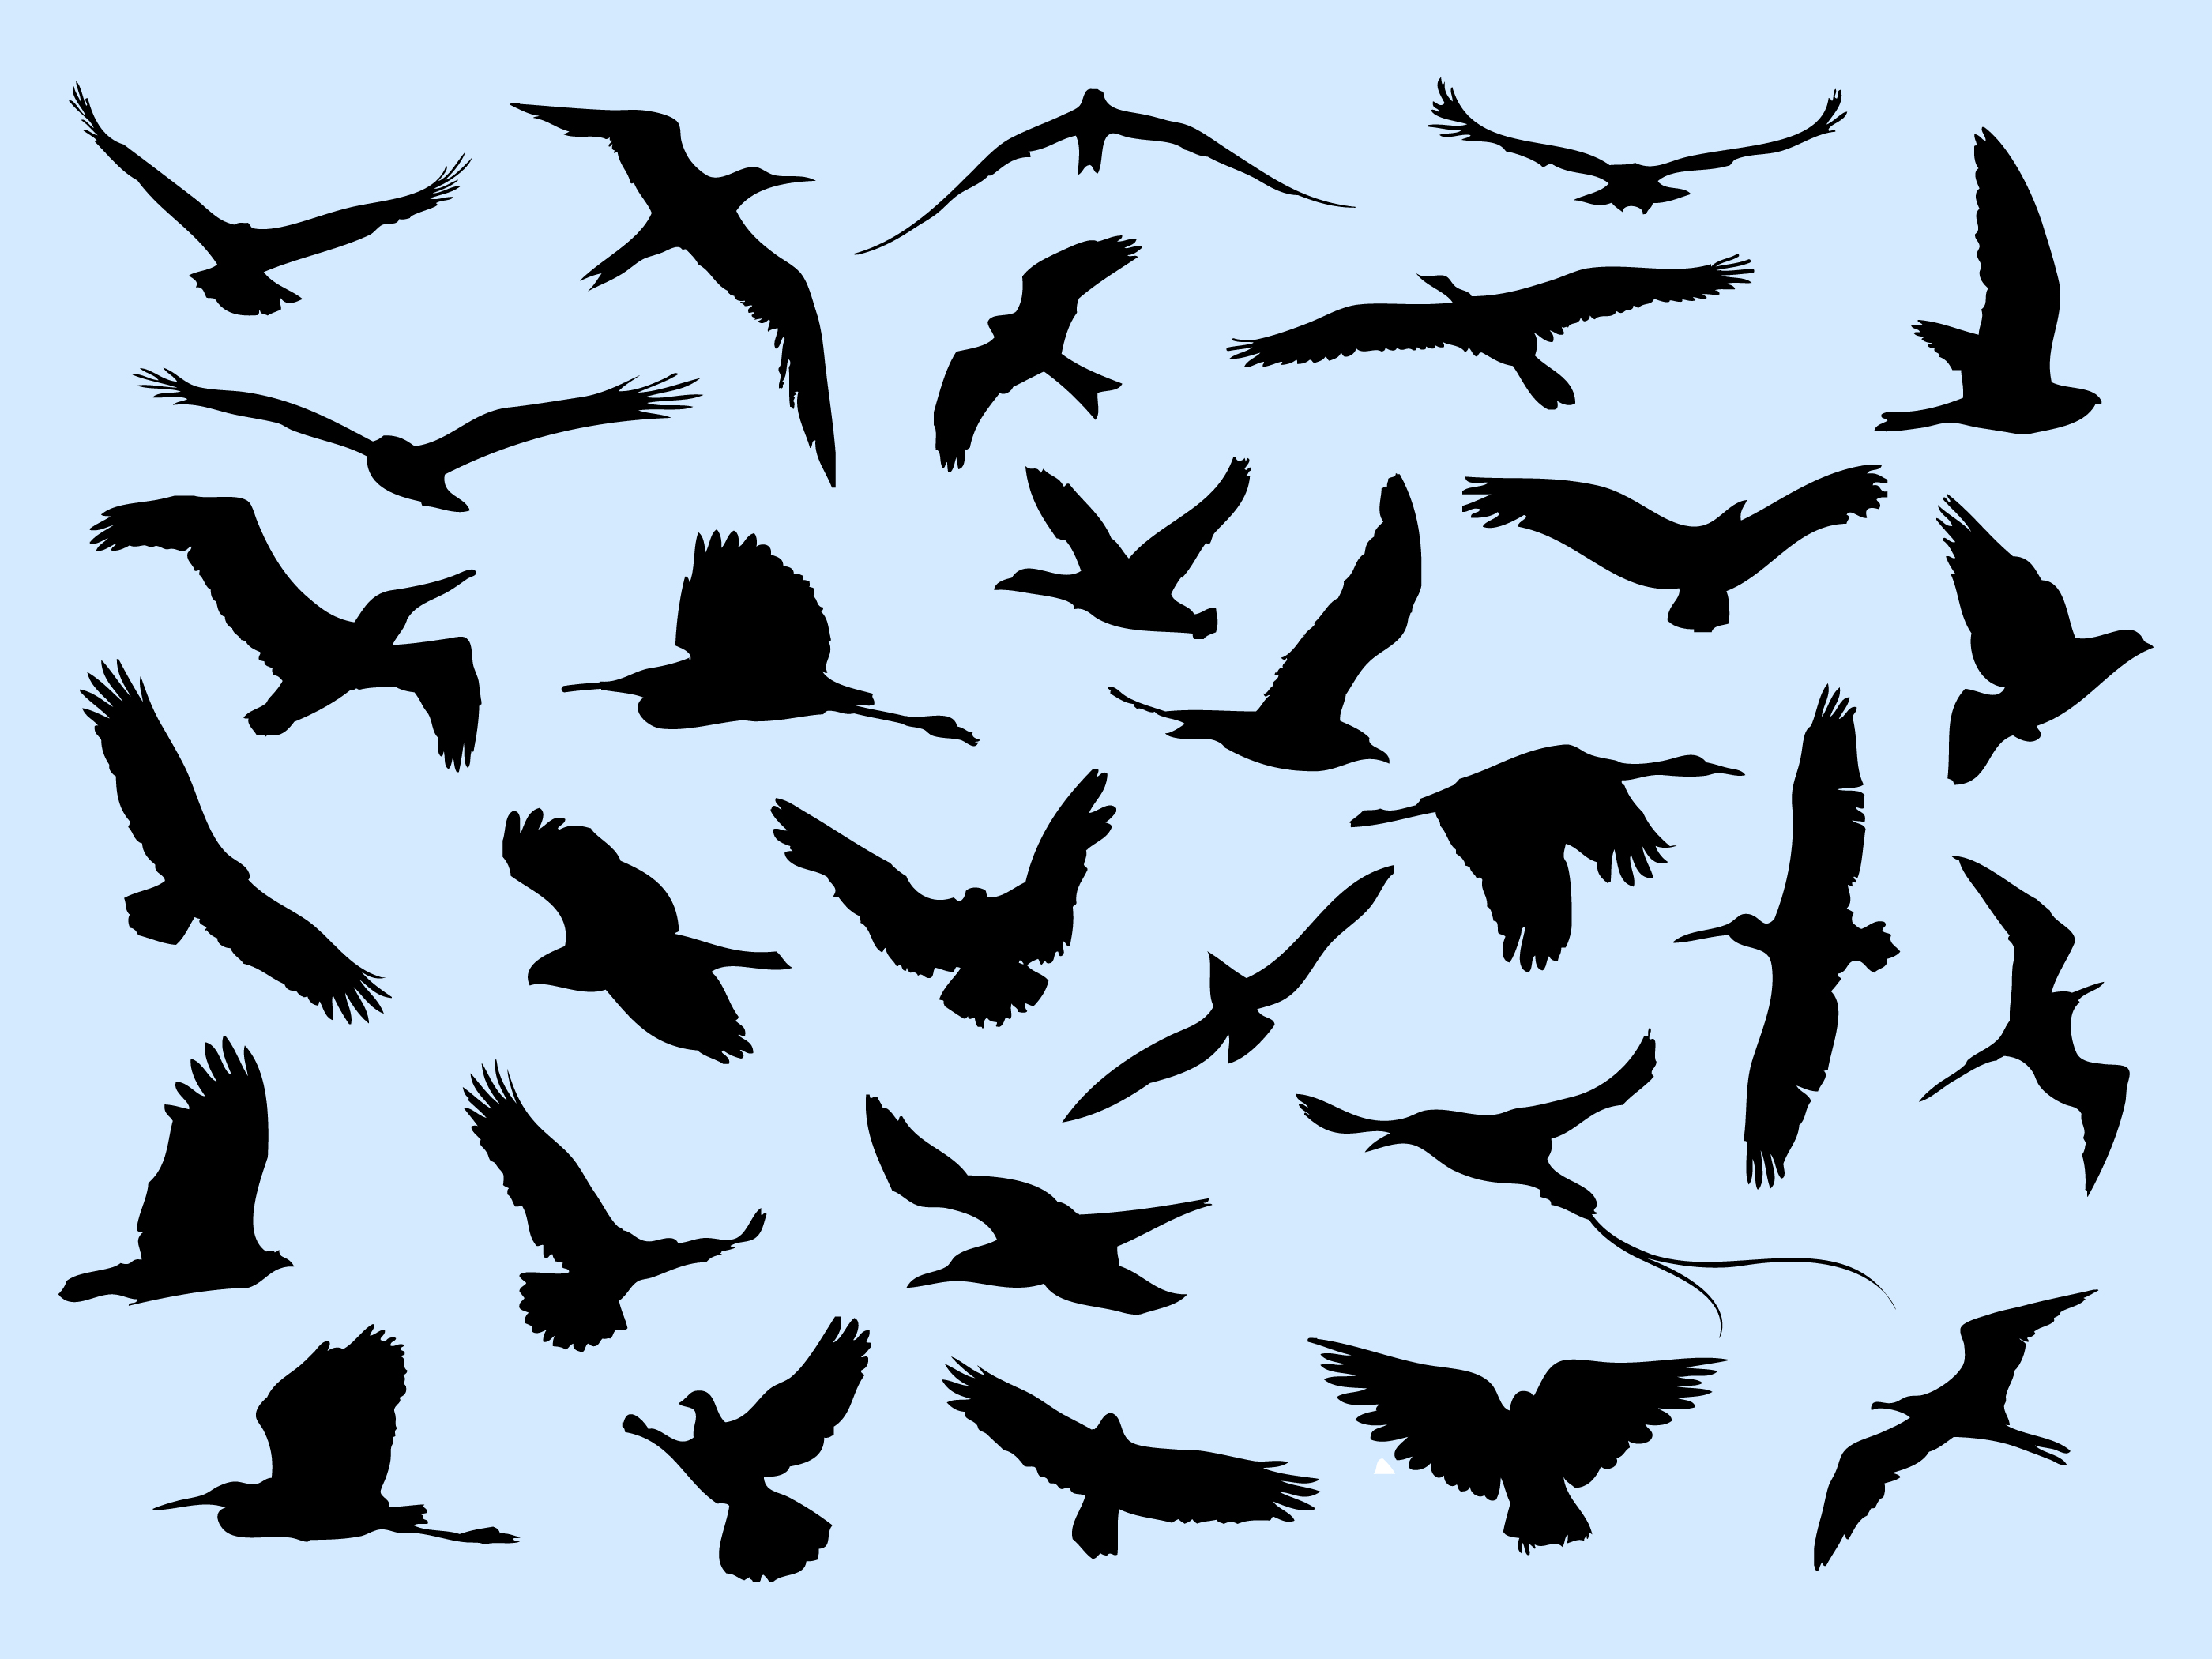 30 Different Flying Birds - Download Free Vector Art ... - photo#19